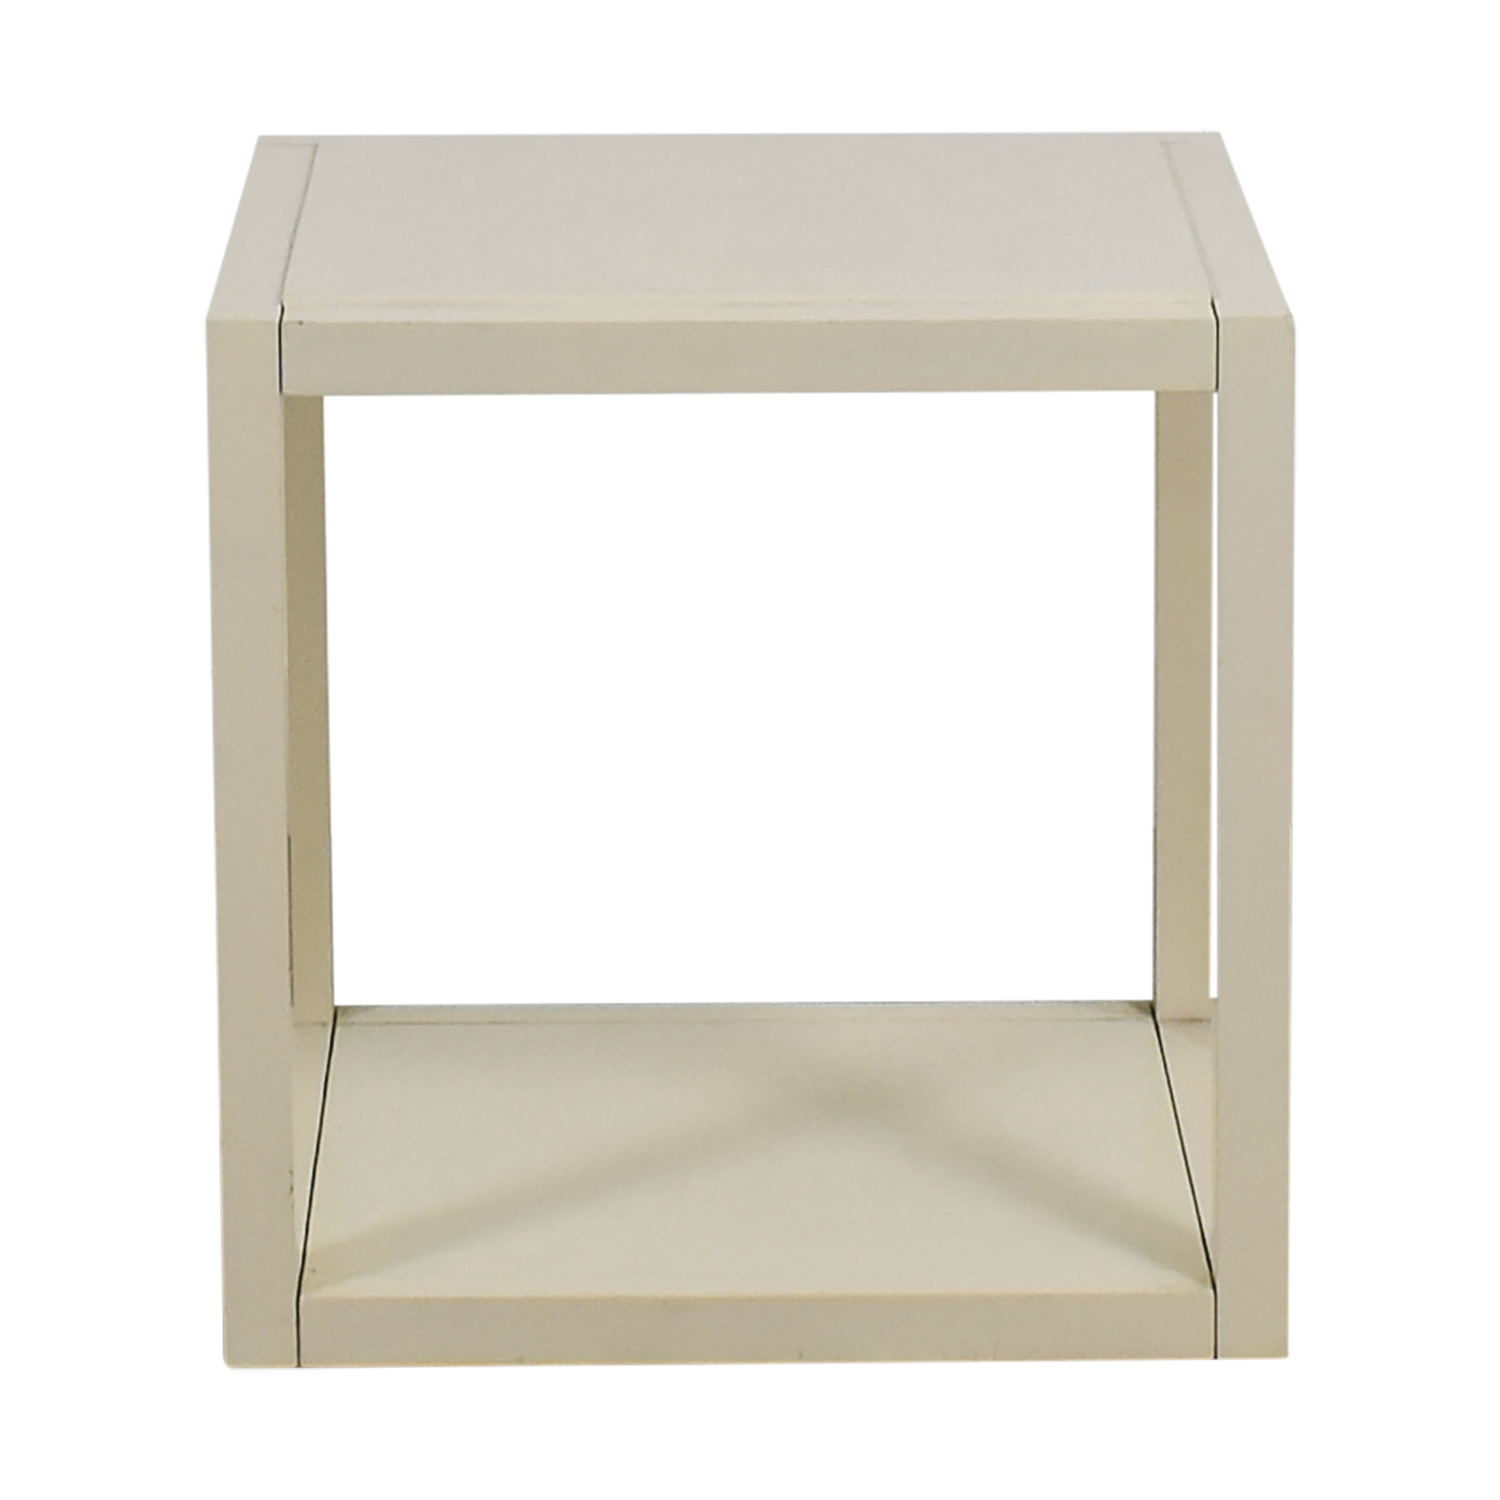 CB2 CB2 White Low Side Table used